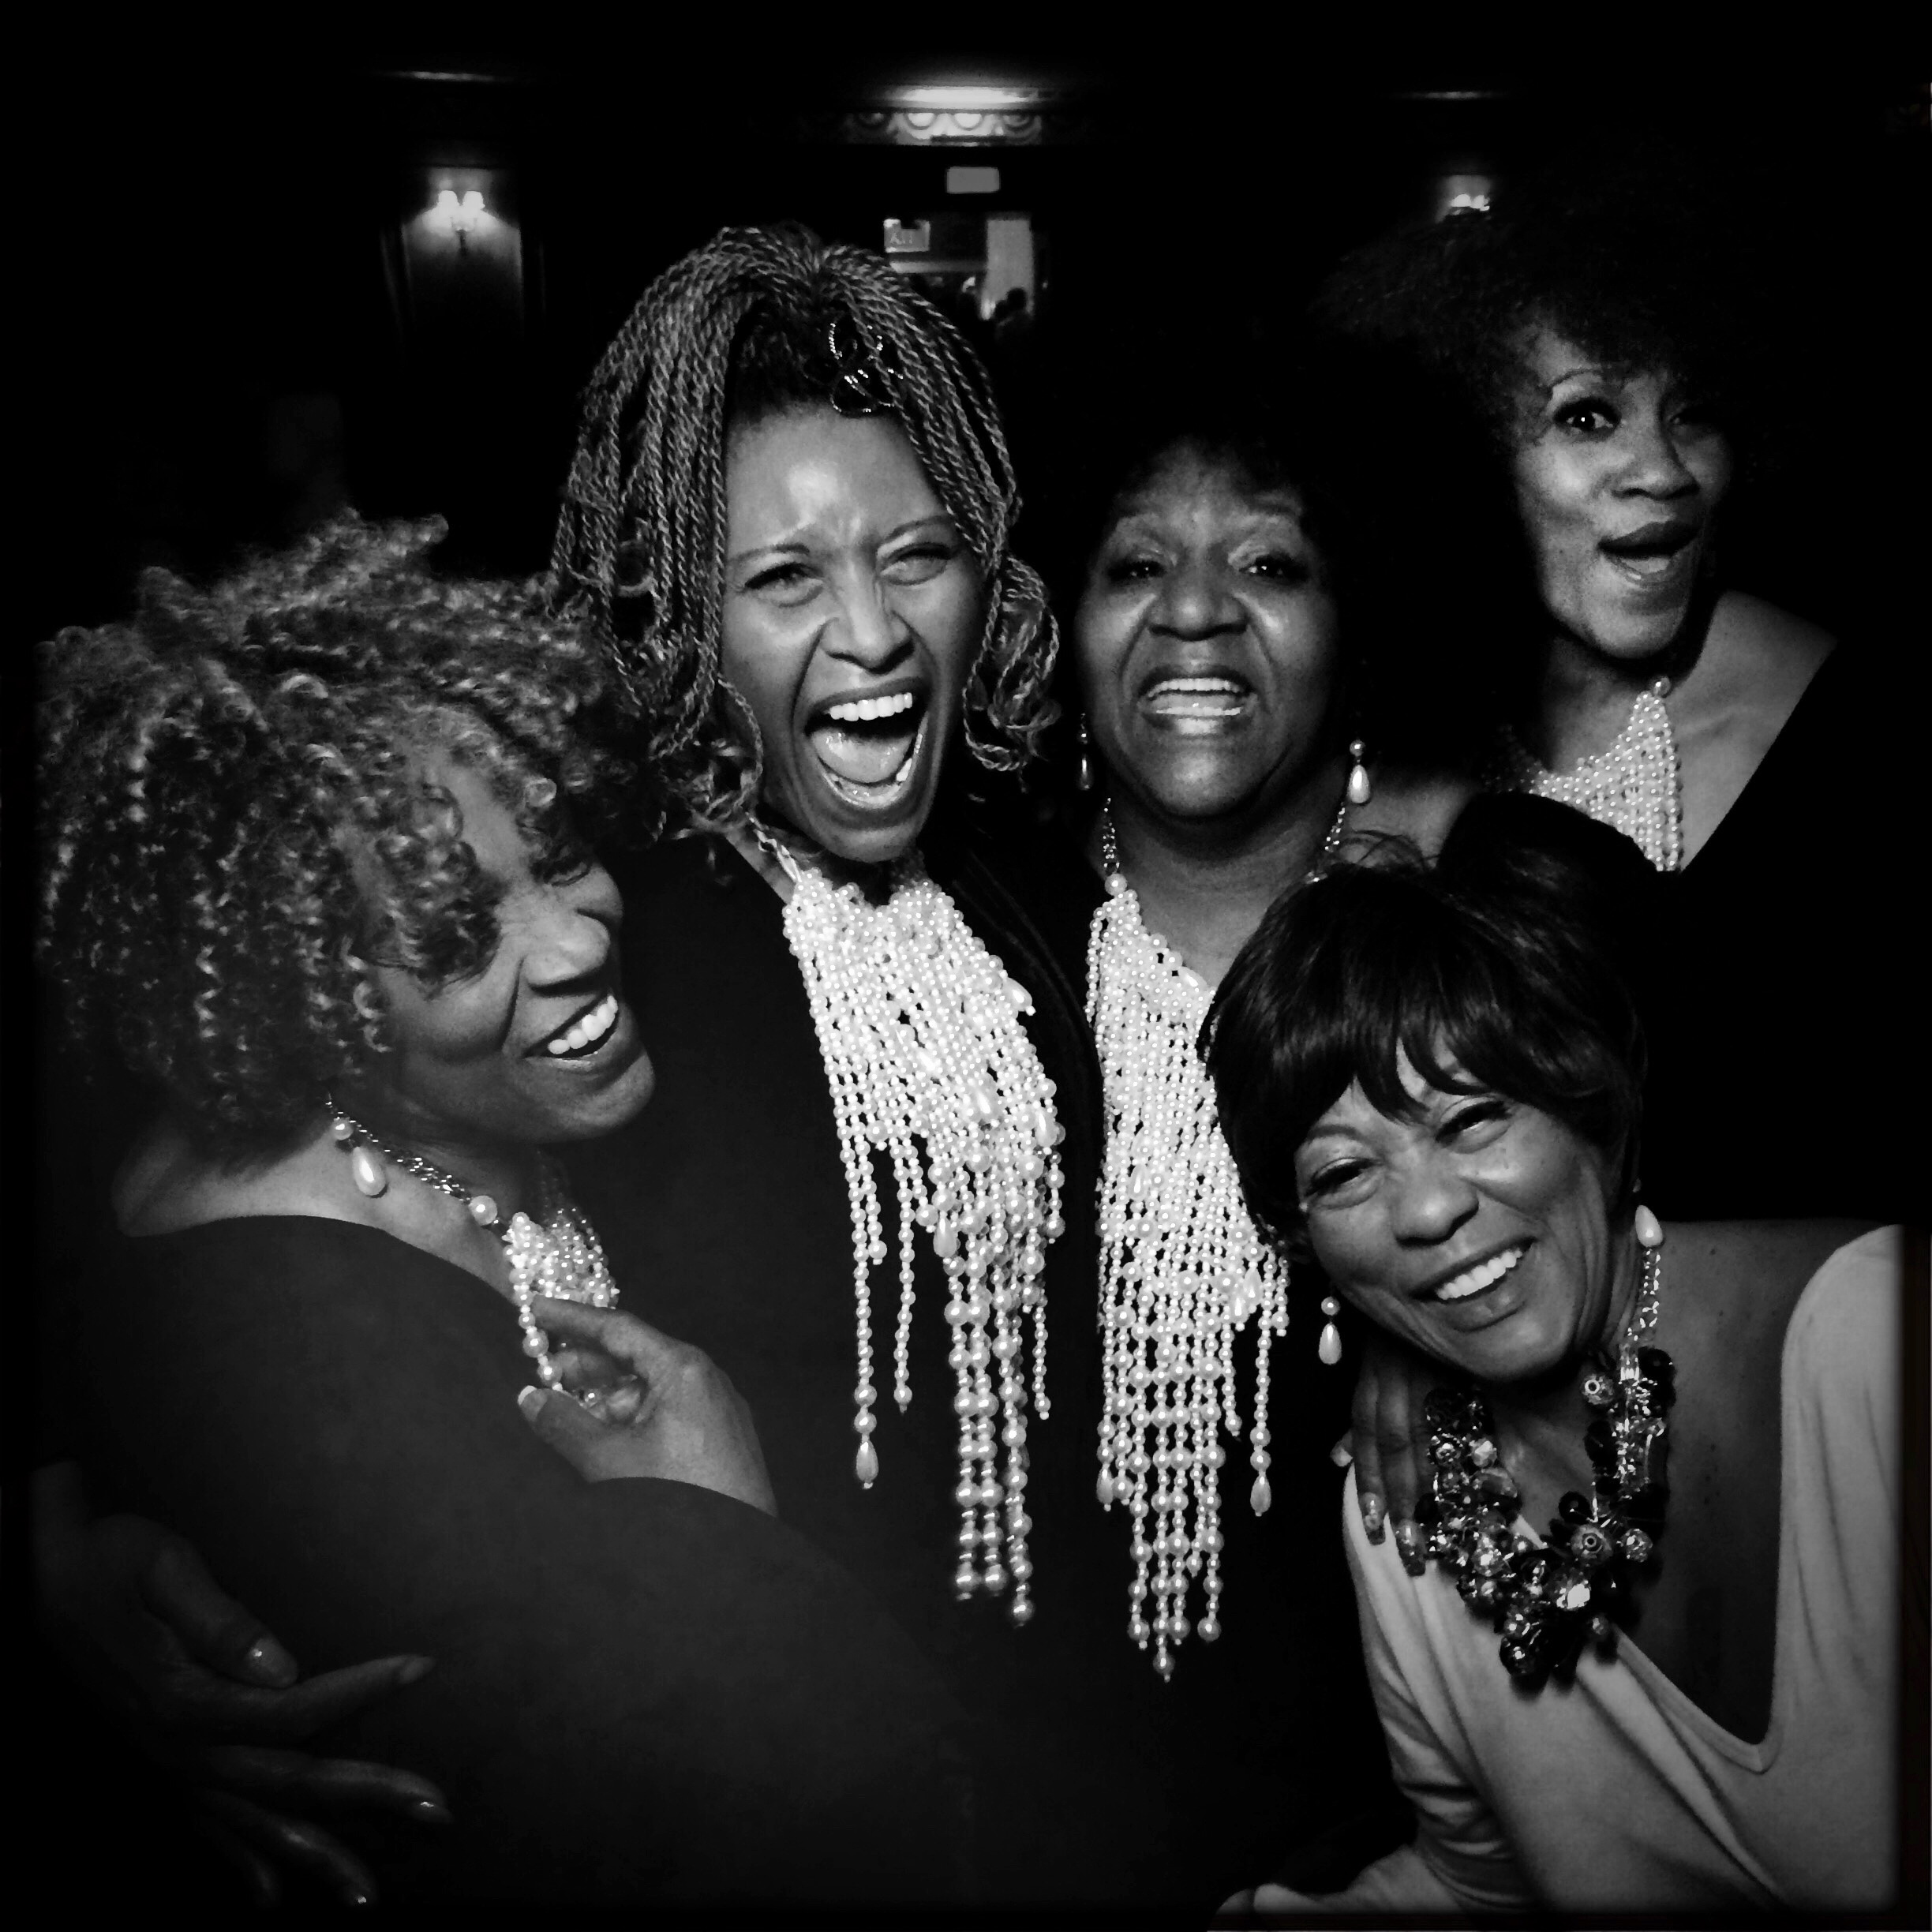 """The Hallelujah Singers, featured in """"Let's Have Some Church Detroit Style,"""" Freep Film Festival.© Nancy Andrews"""